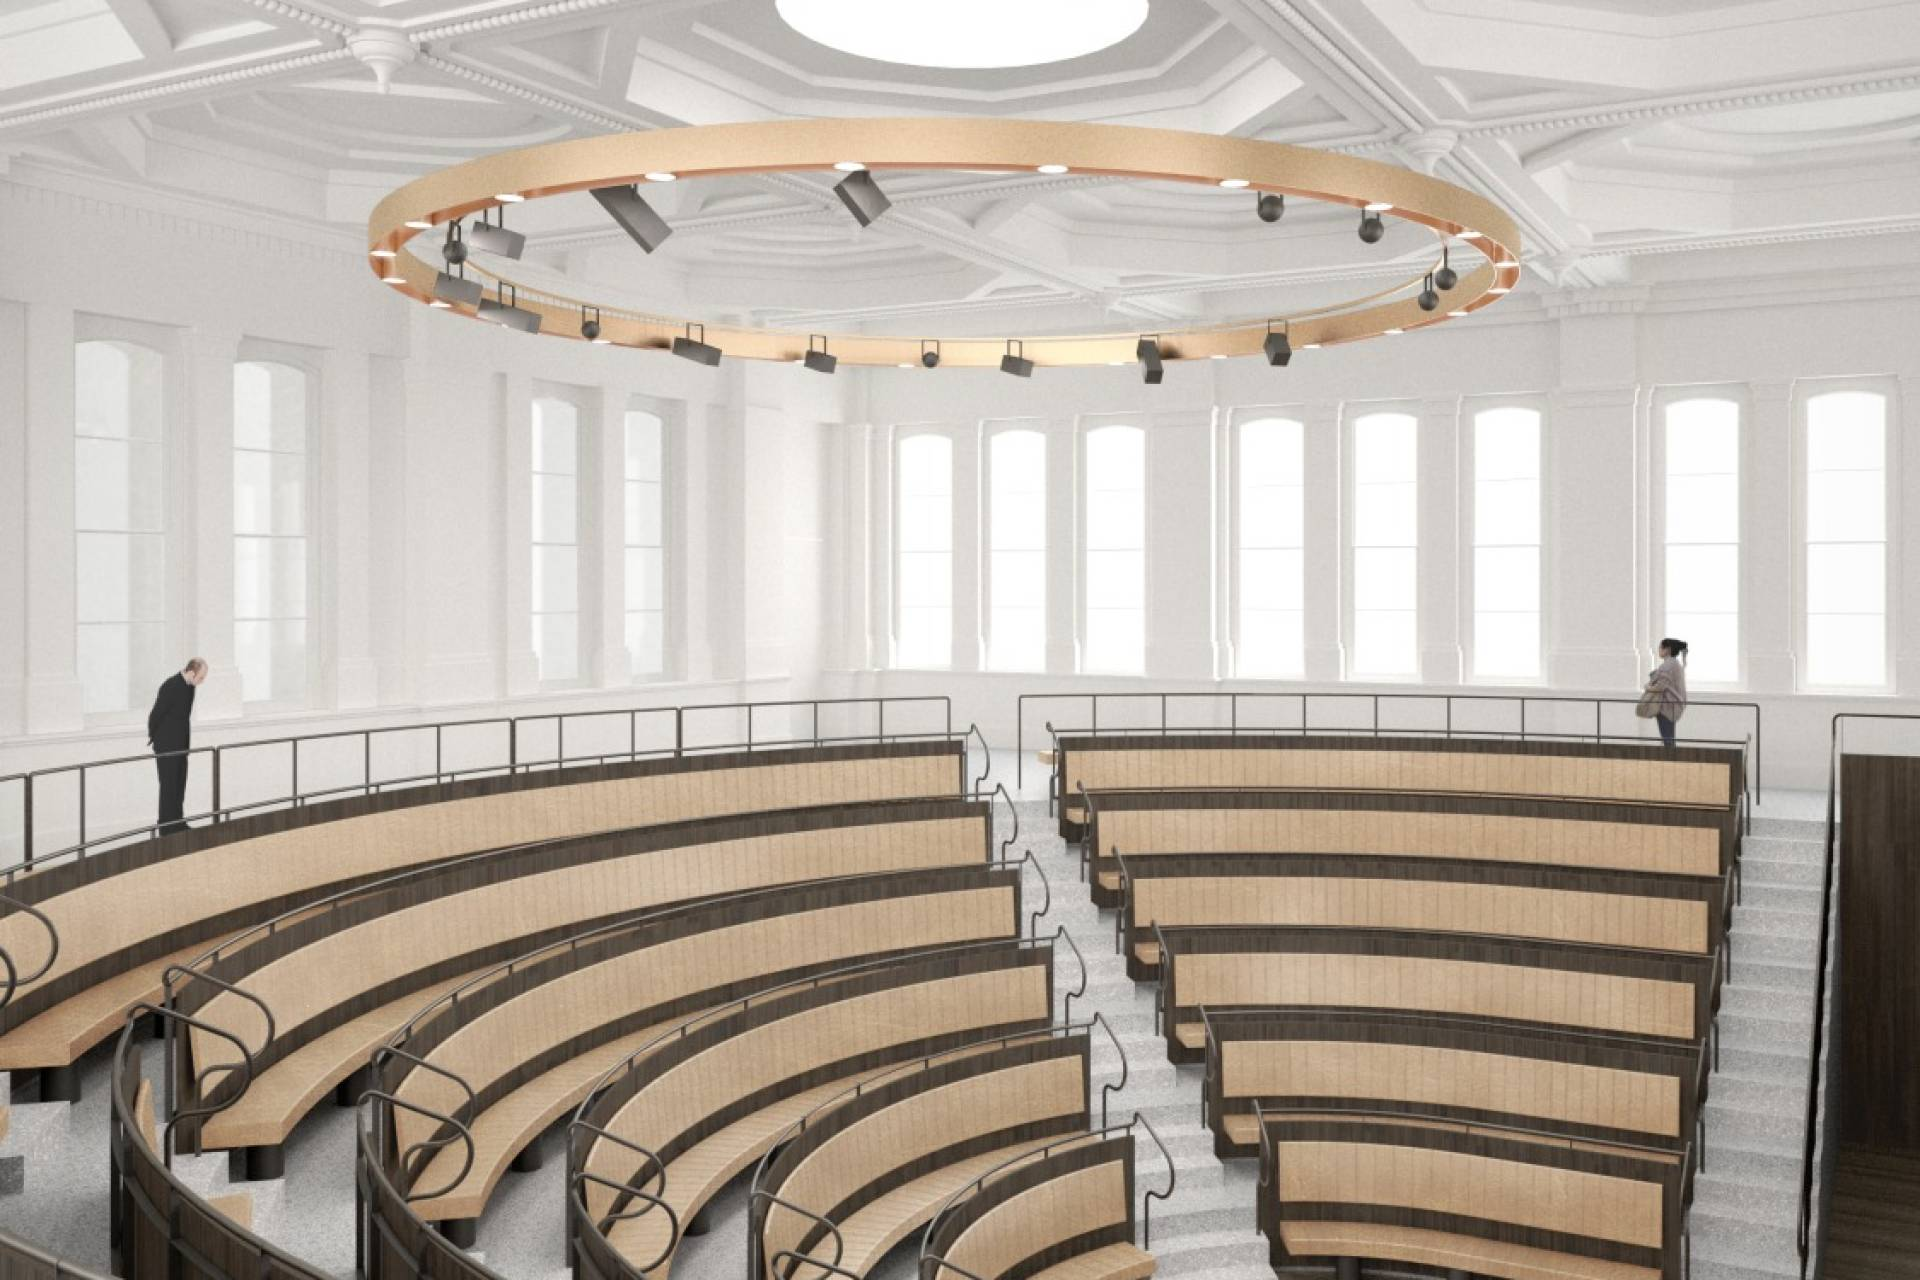 Royal Academy of Arts lecture theatre